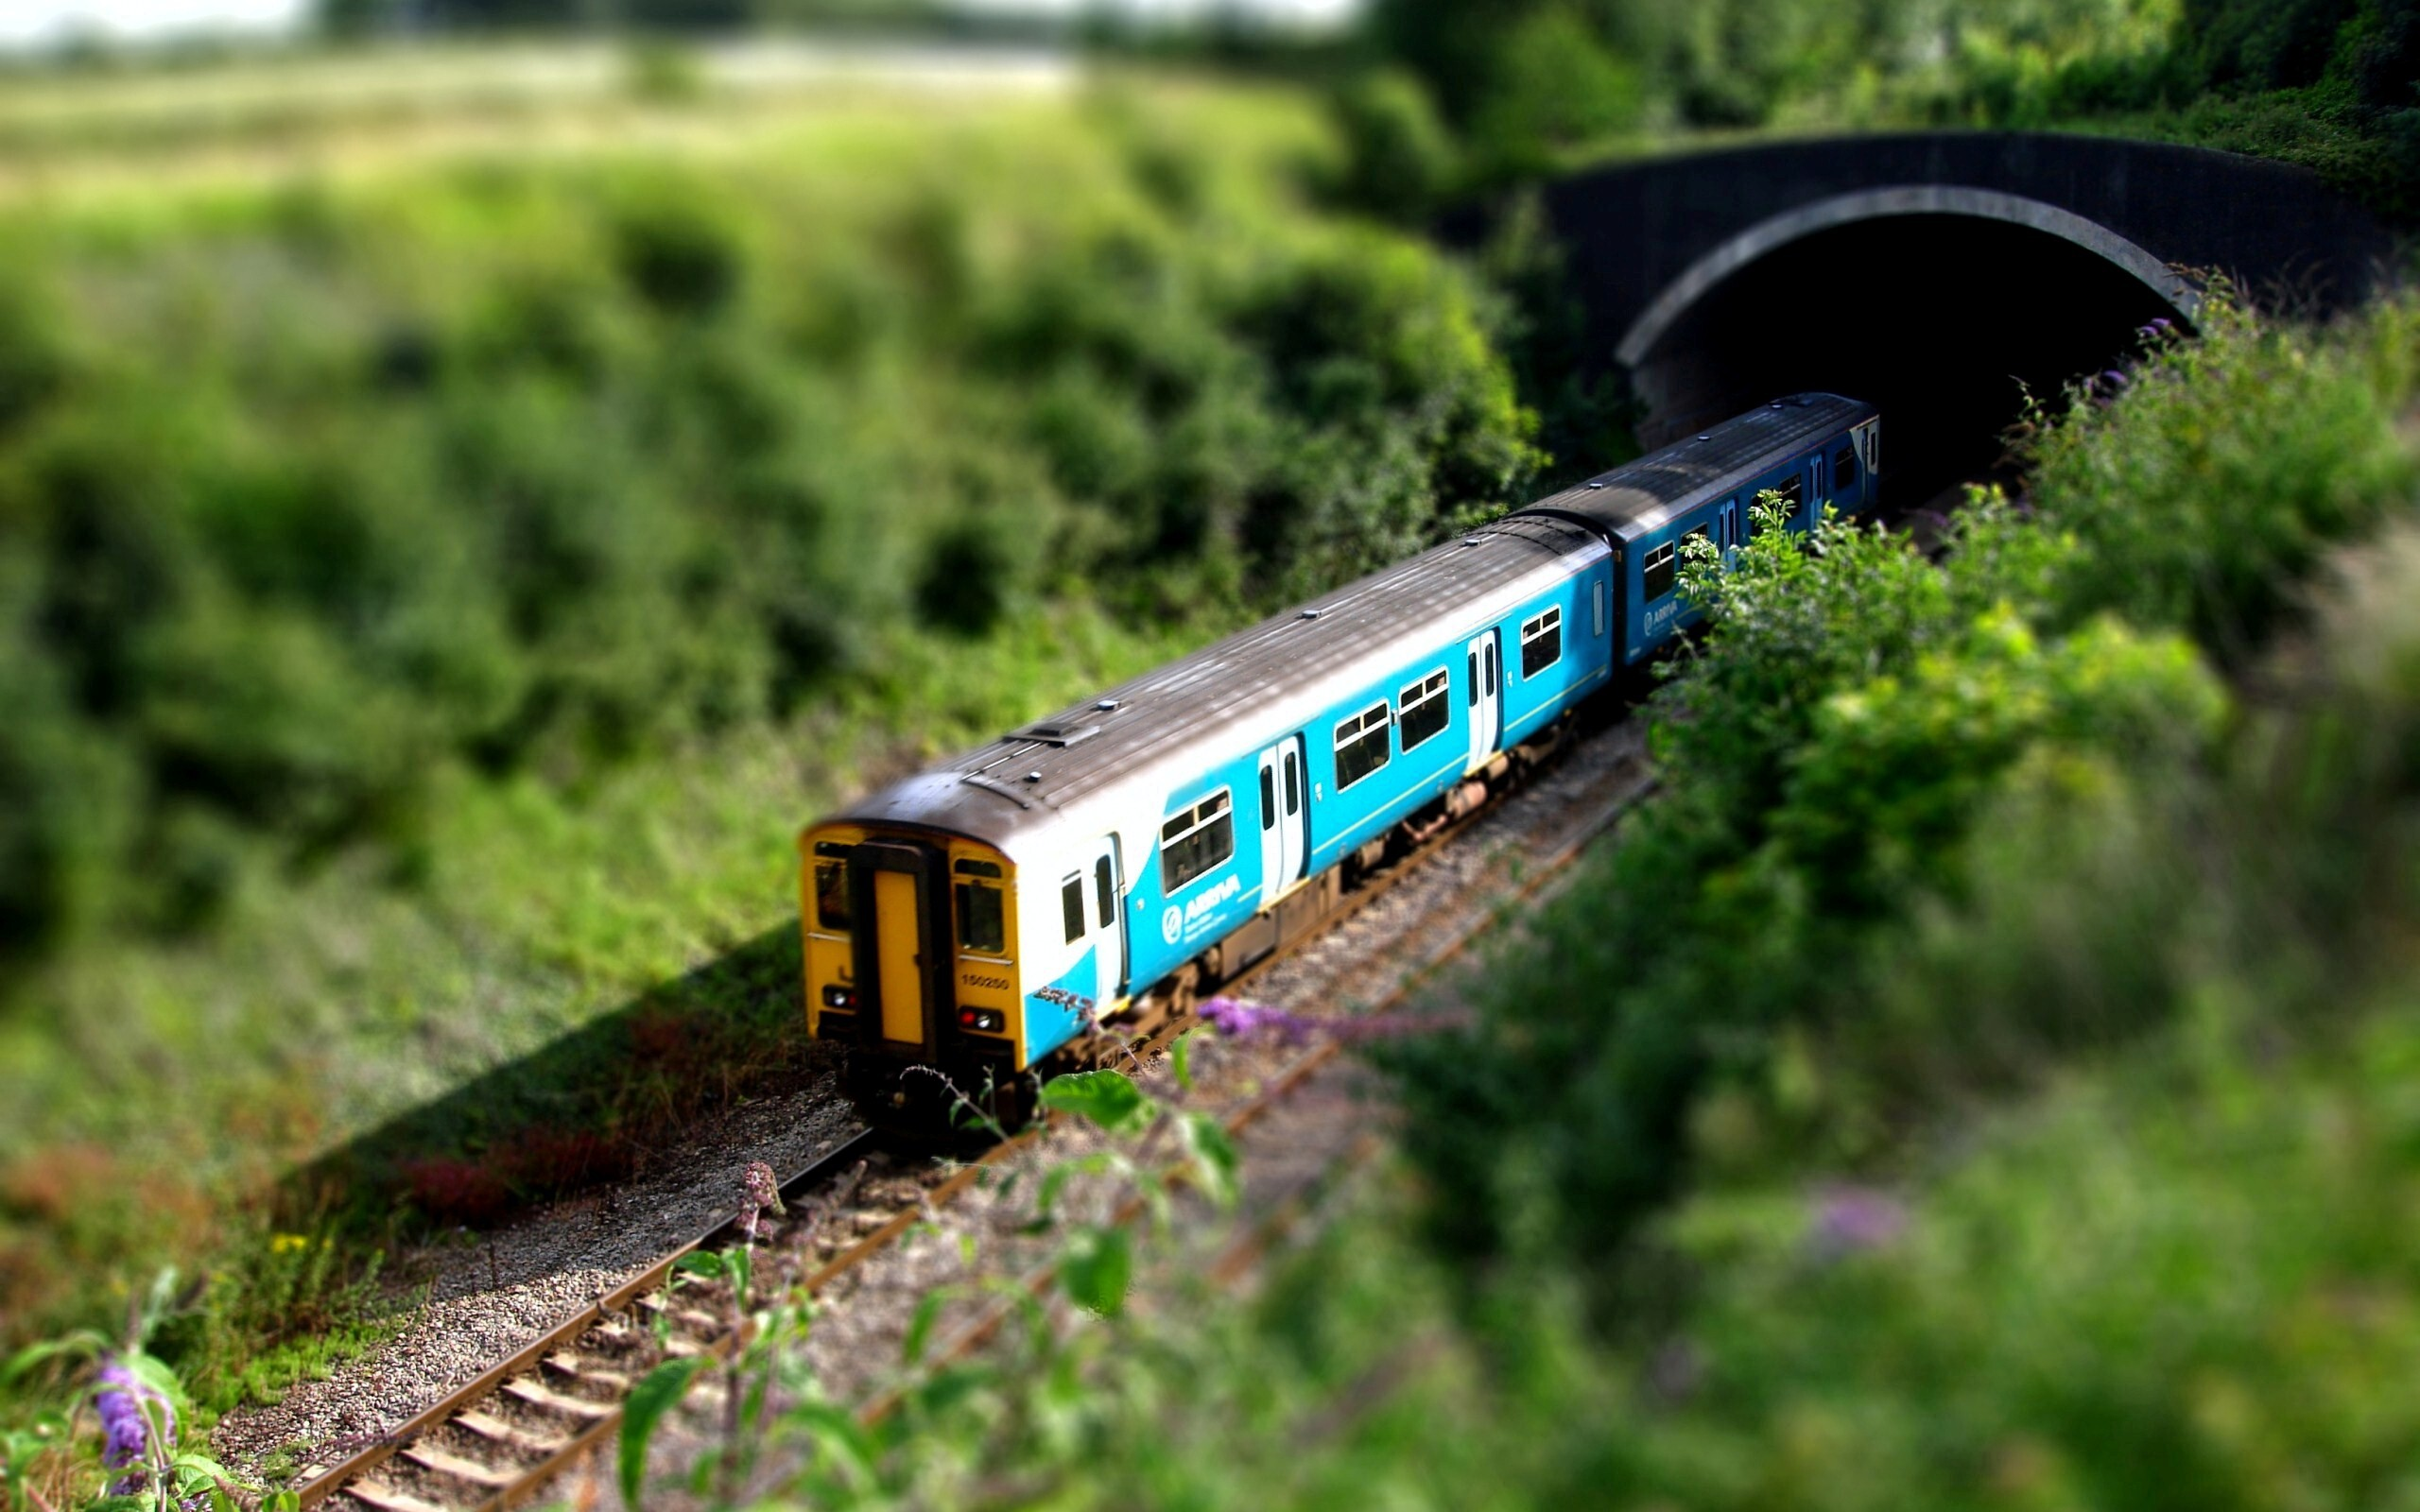 Train HD Wallpapers Images Pictures Photos Download